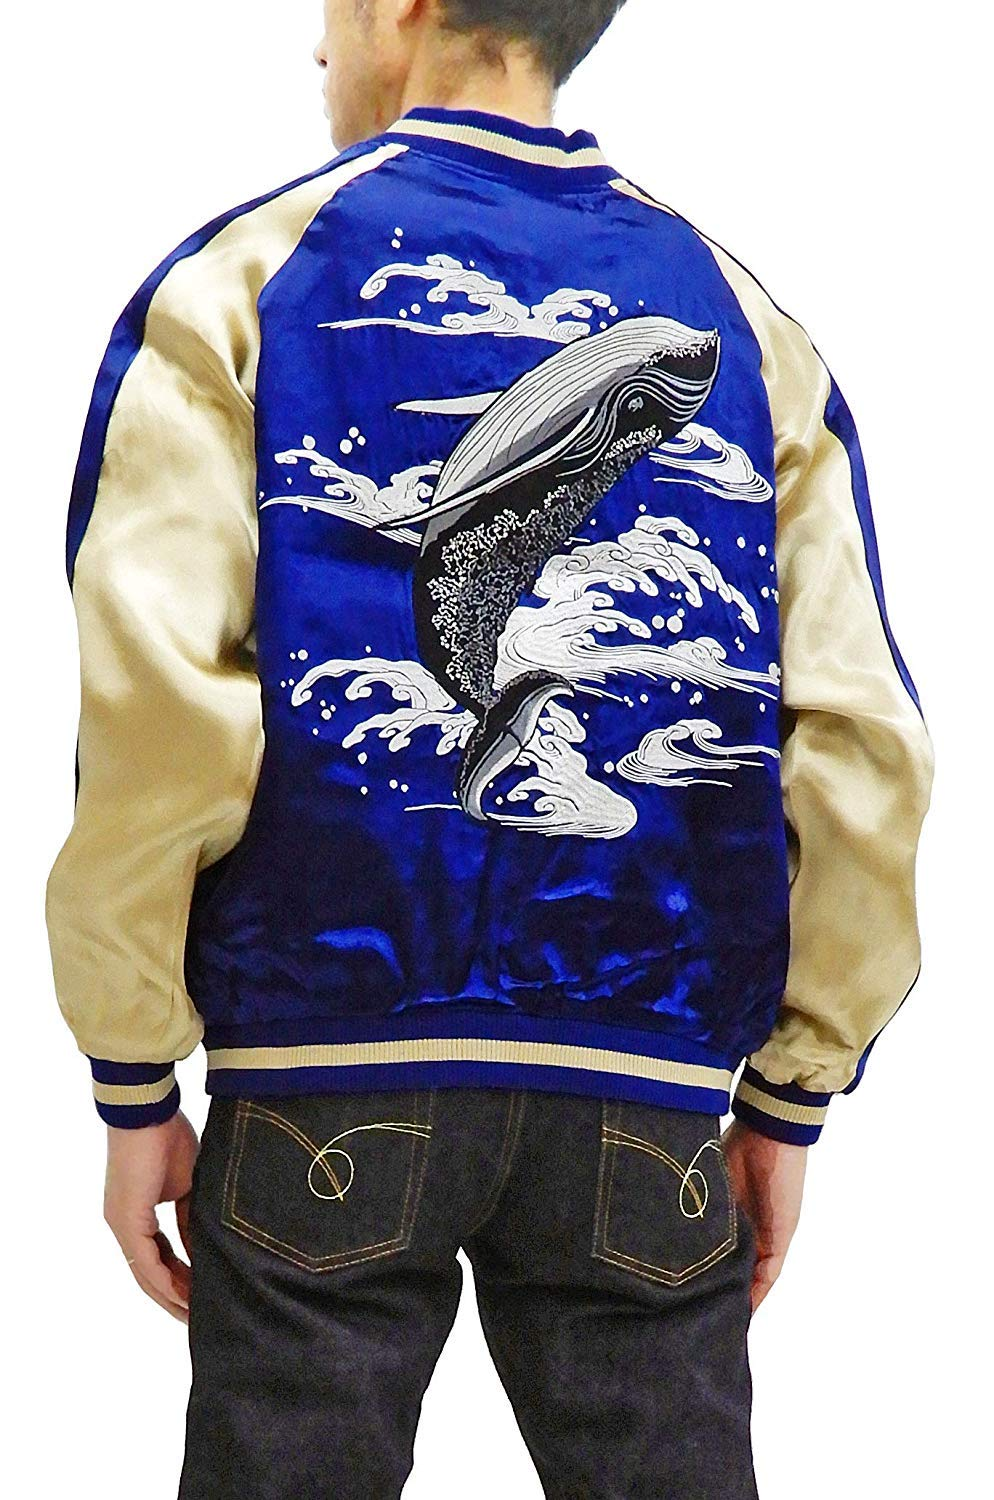 Japanesque Men's Slim Fit Japanese Souvenir Jacket Whale Breach Sukajan 3RSJ-041 Navy Tagged Japan XL (US M) by Japanesque